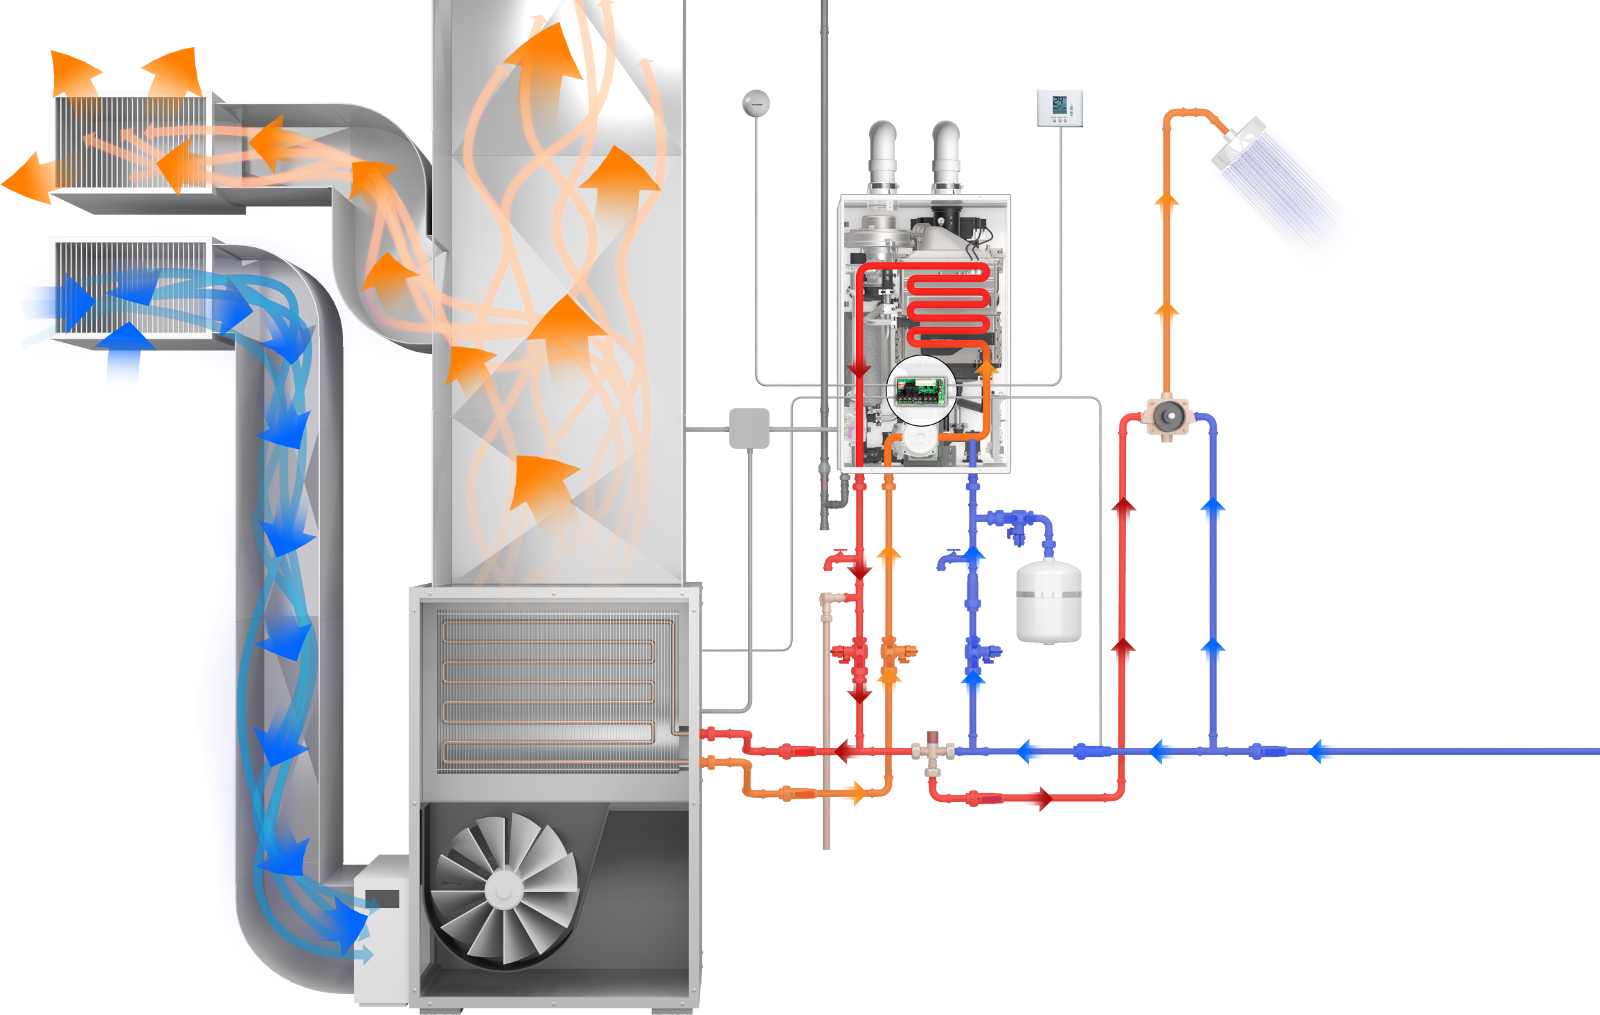 navien piping diagram npe a series tankless water heater series navien  npe a series tankless water heater